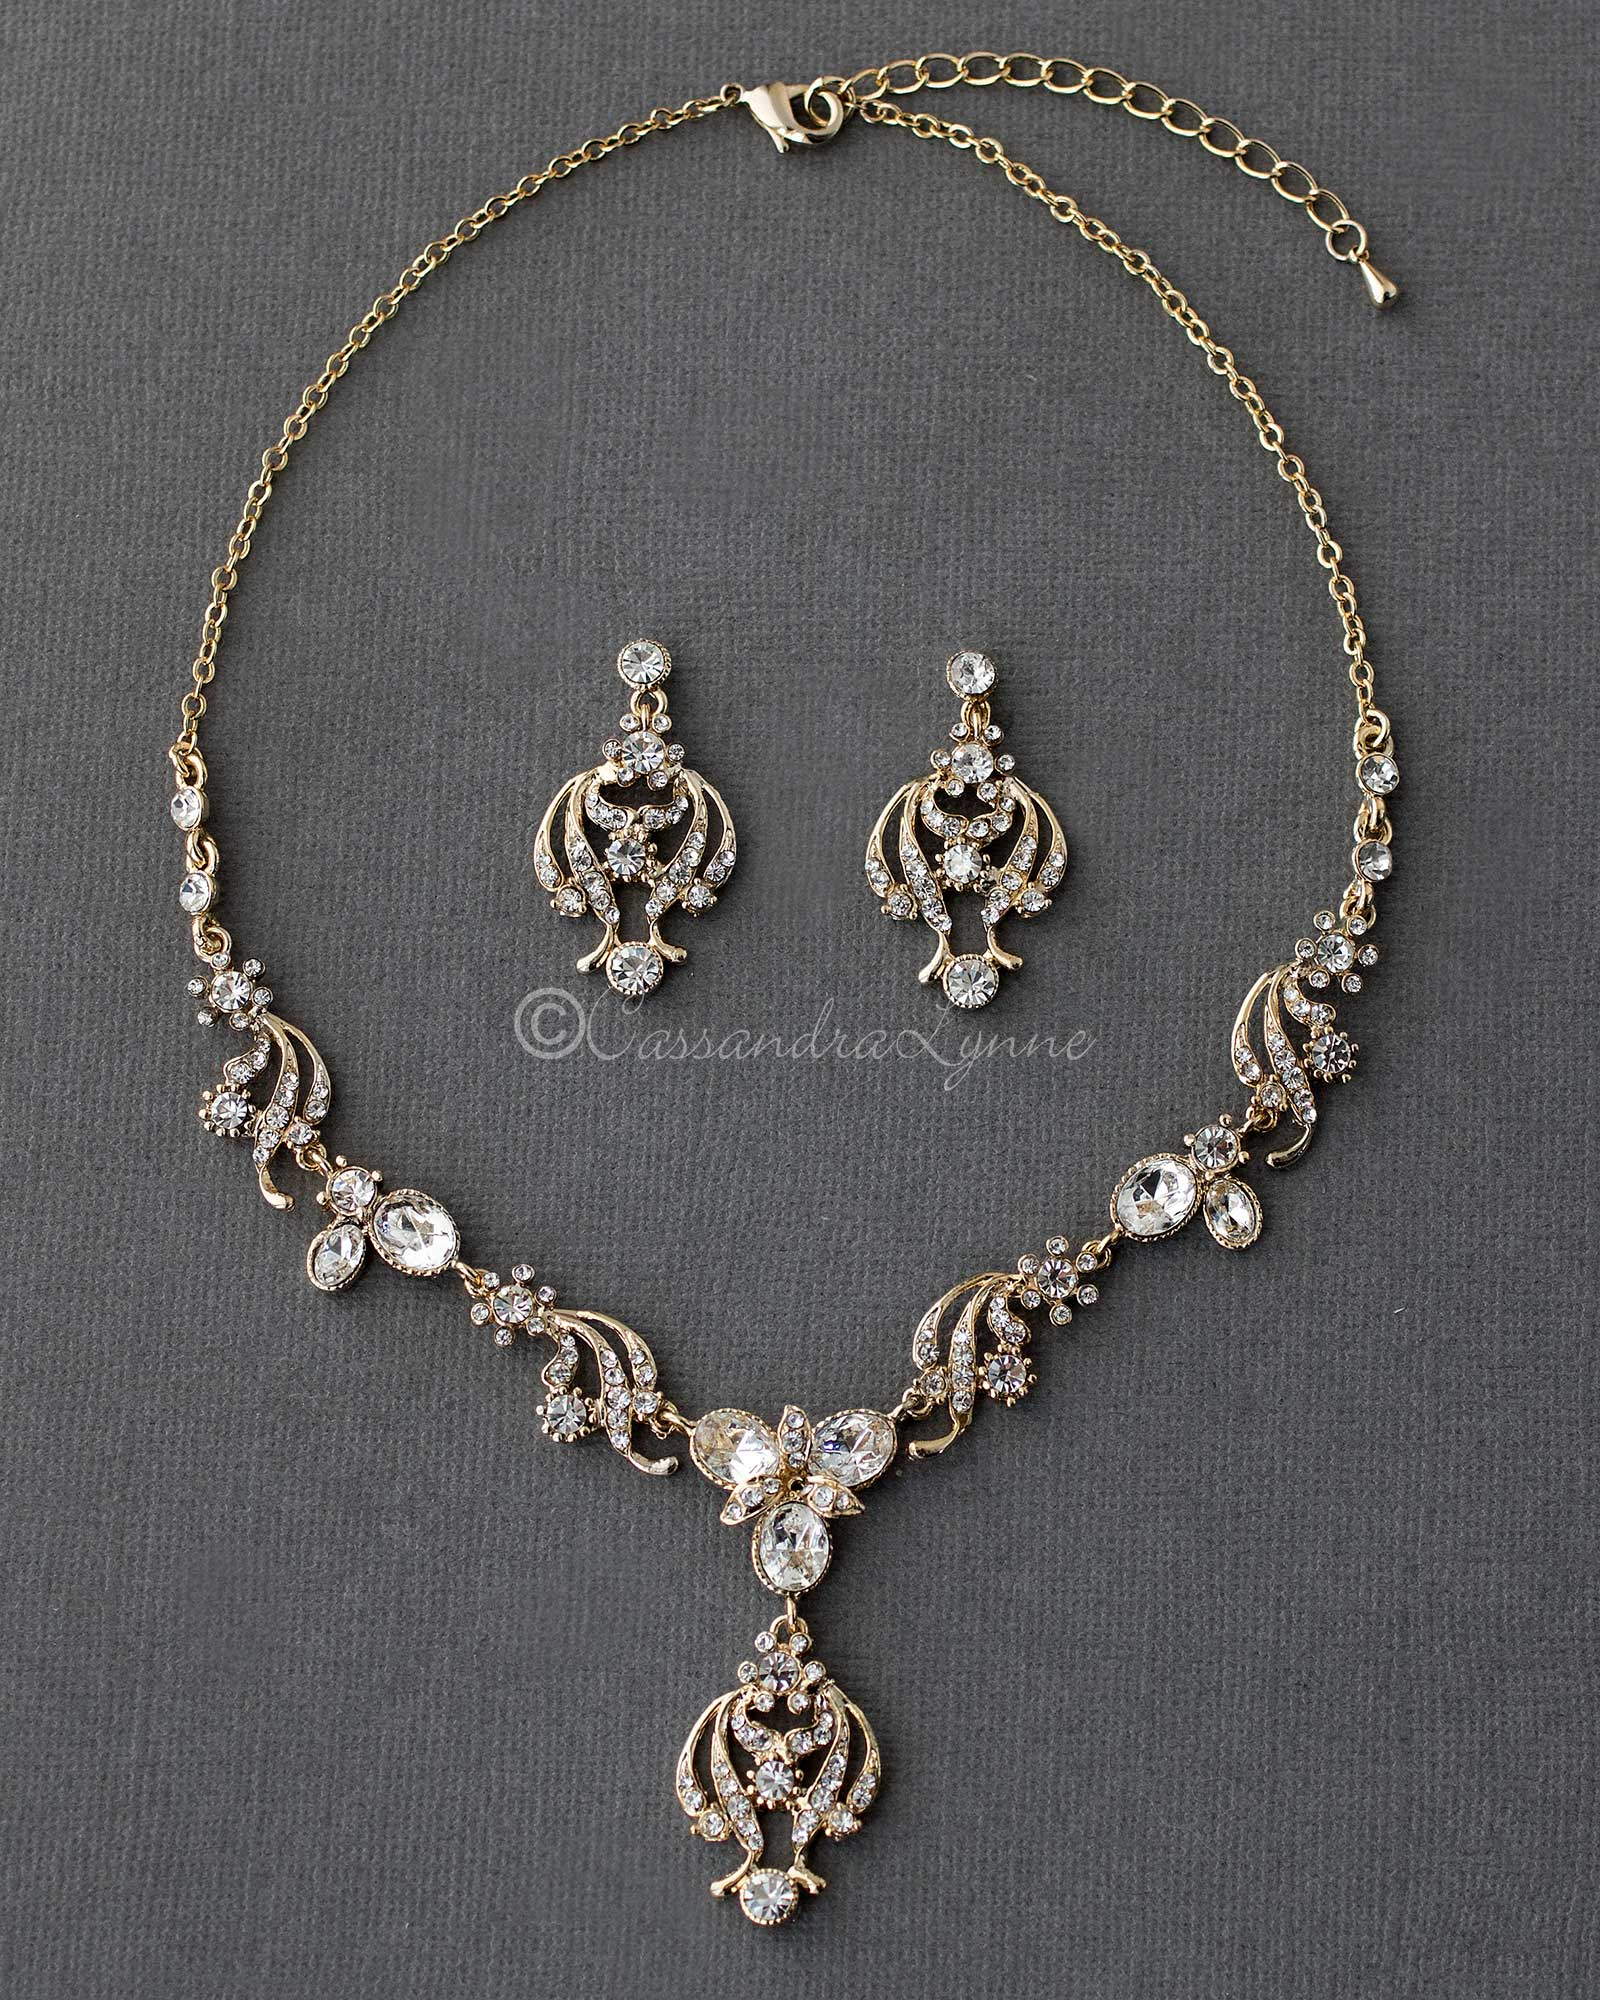 Gold Oval Crystal Necklace Set with Chandelier Drop